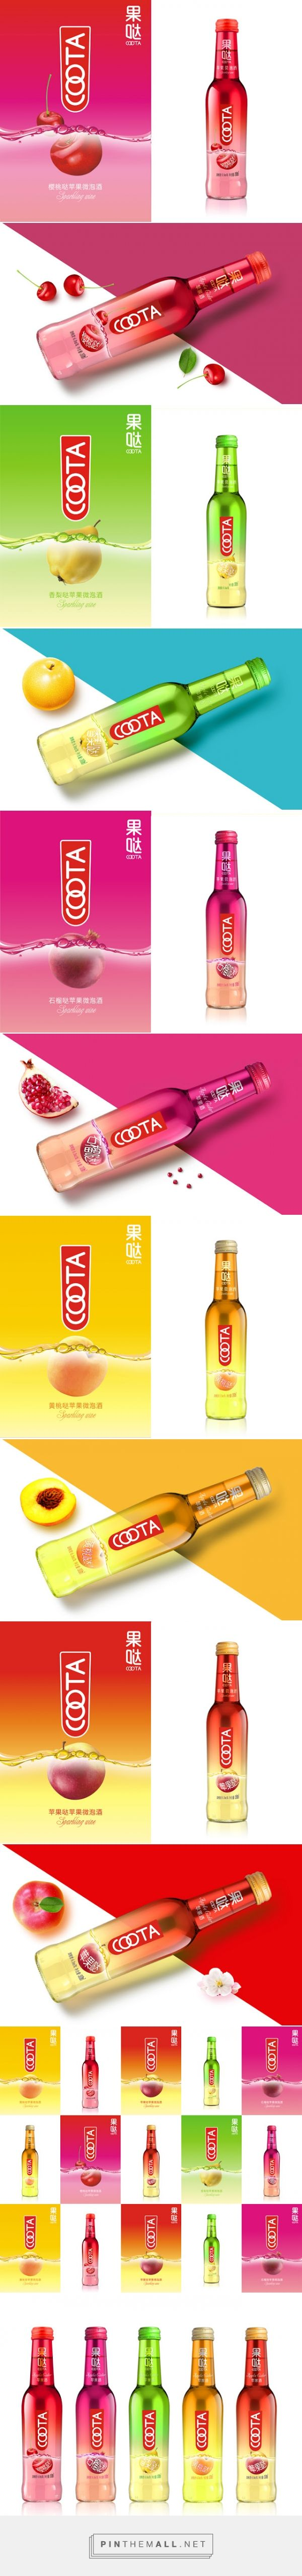 COOTA Cider  Packaging of the World - Creative Package Design Gallery - http://www.packagingoftheworld.com/2015/08/coota-cider.html